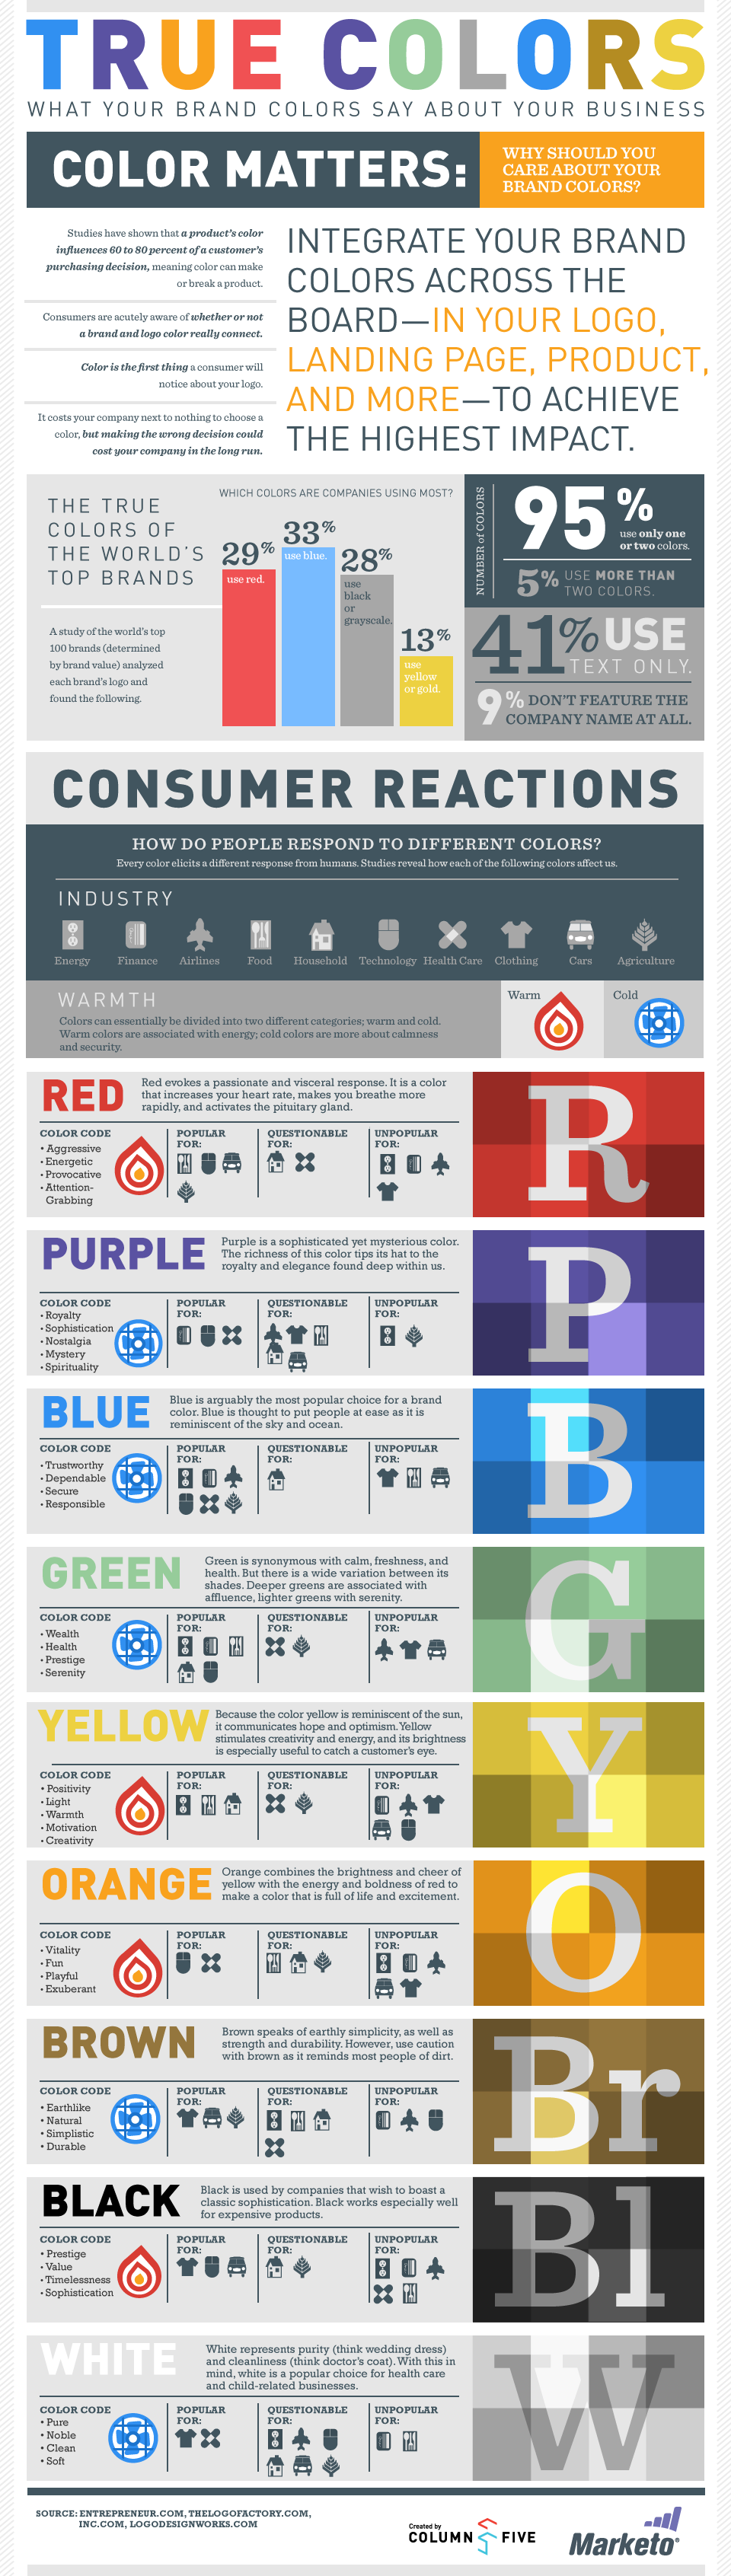 True Colors - Infographic - Creative Printing of Bay County